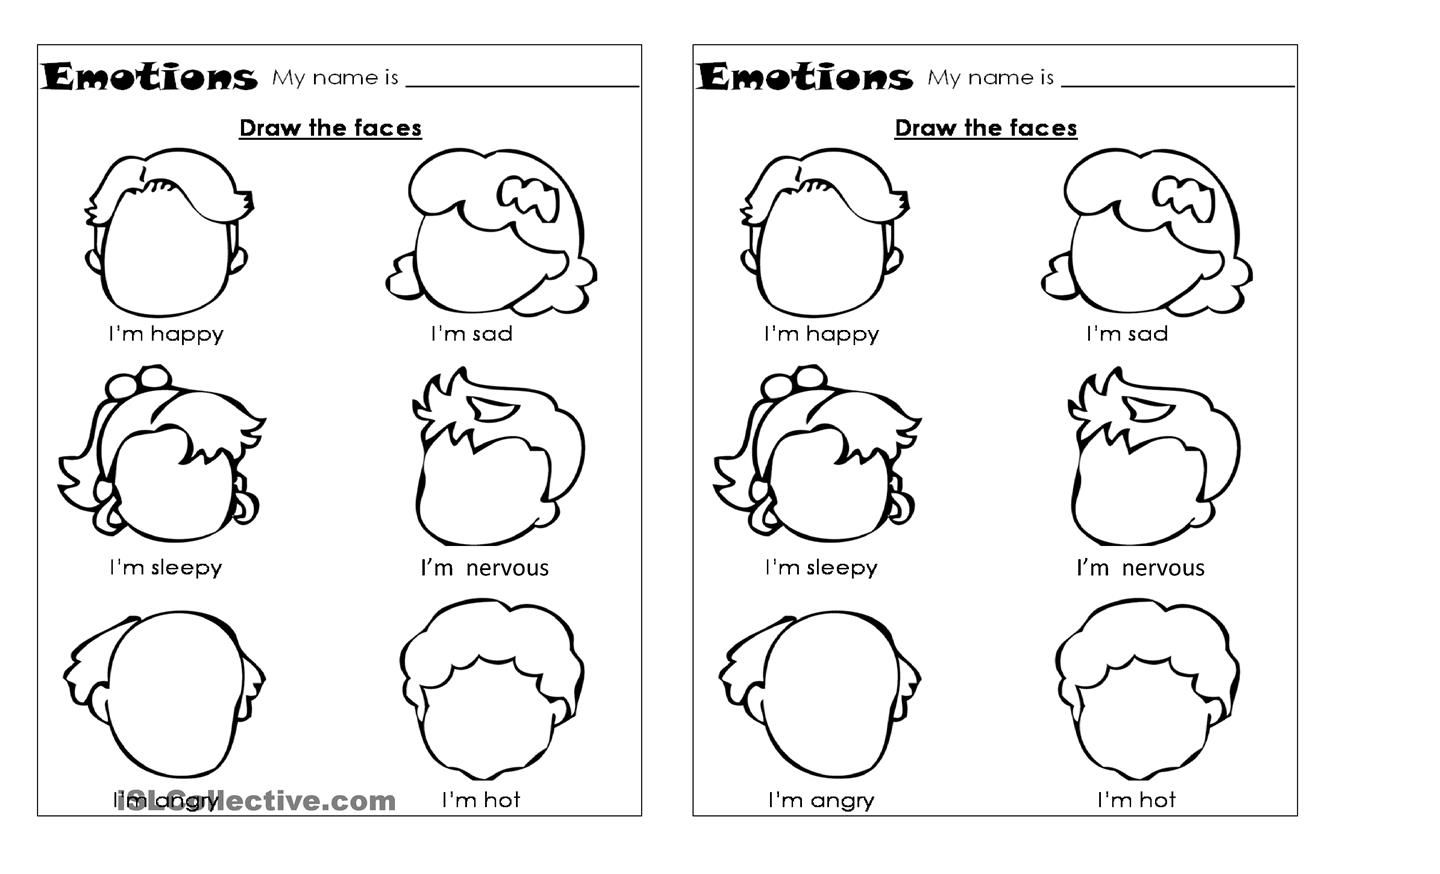 emotions | TEFL | Pinterest | Emotion faces, Worksheets and ...